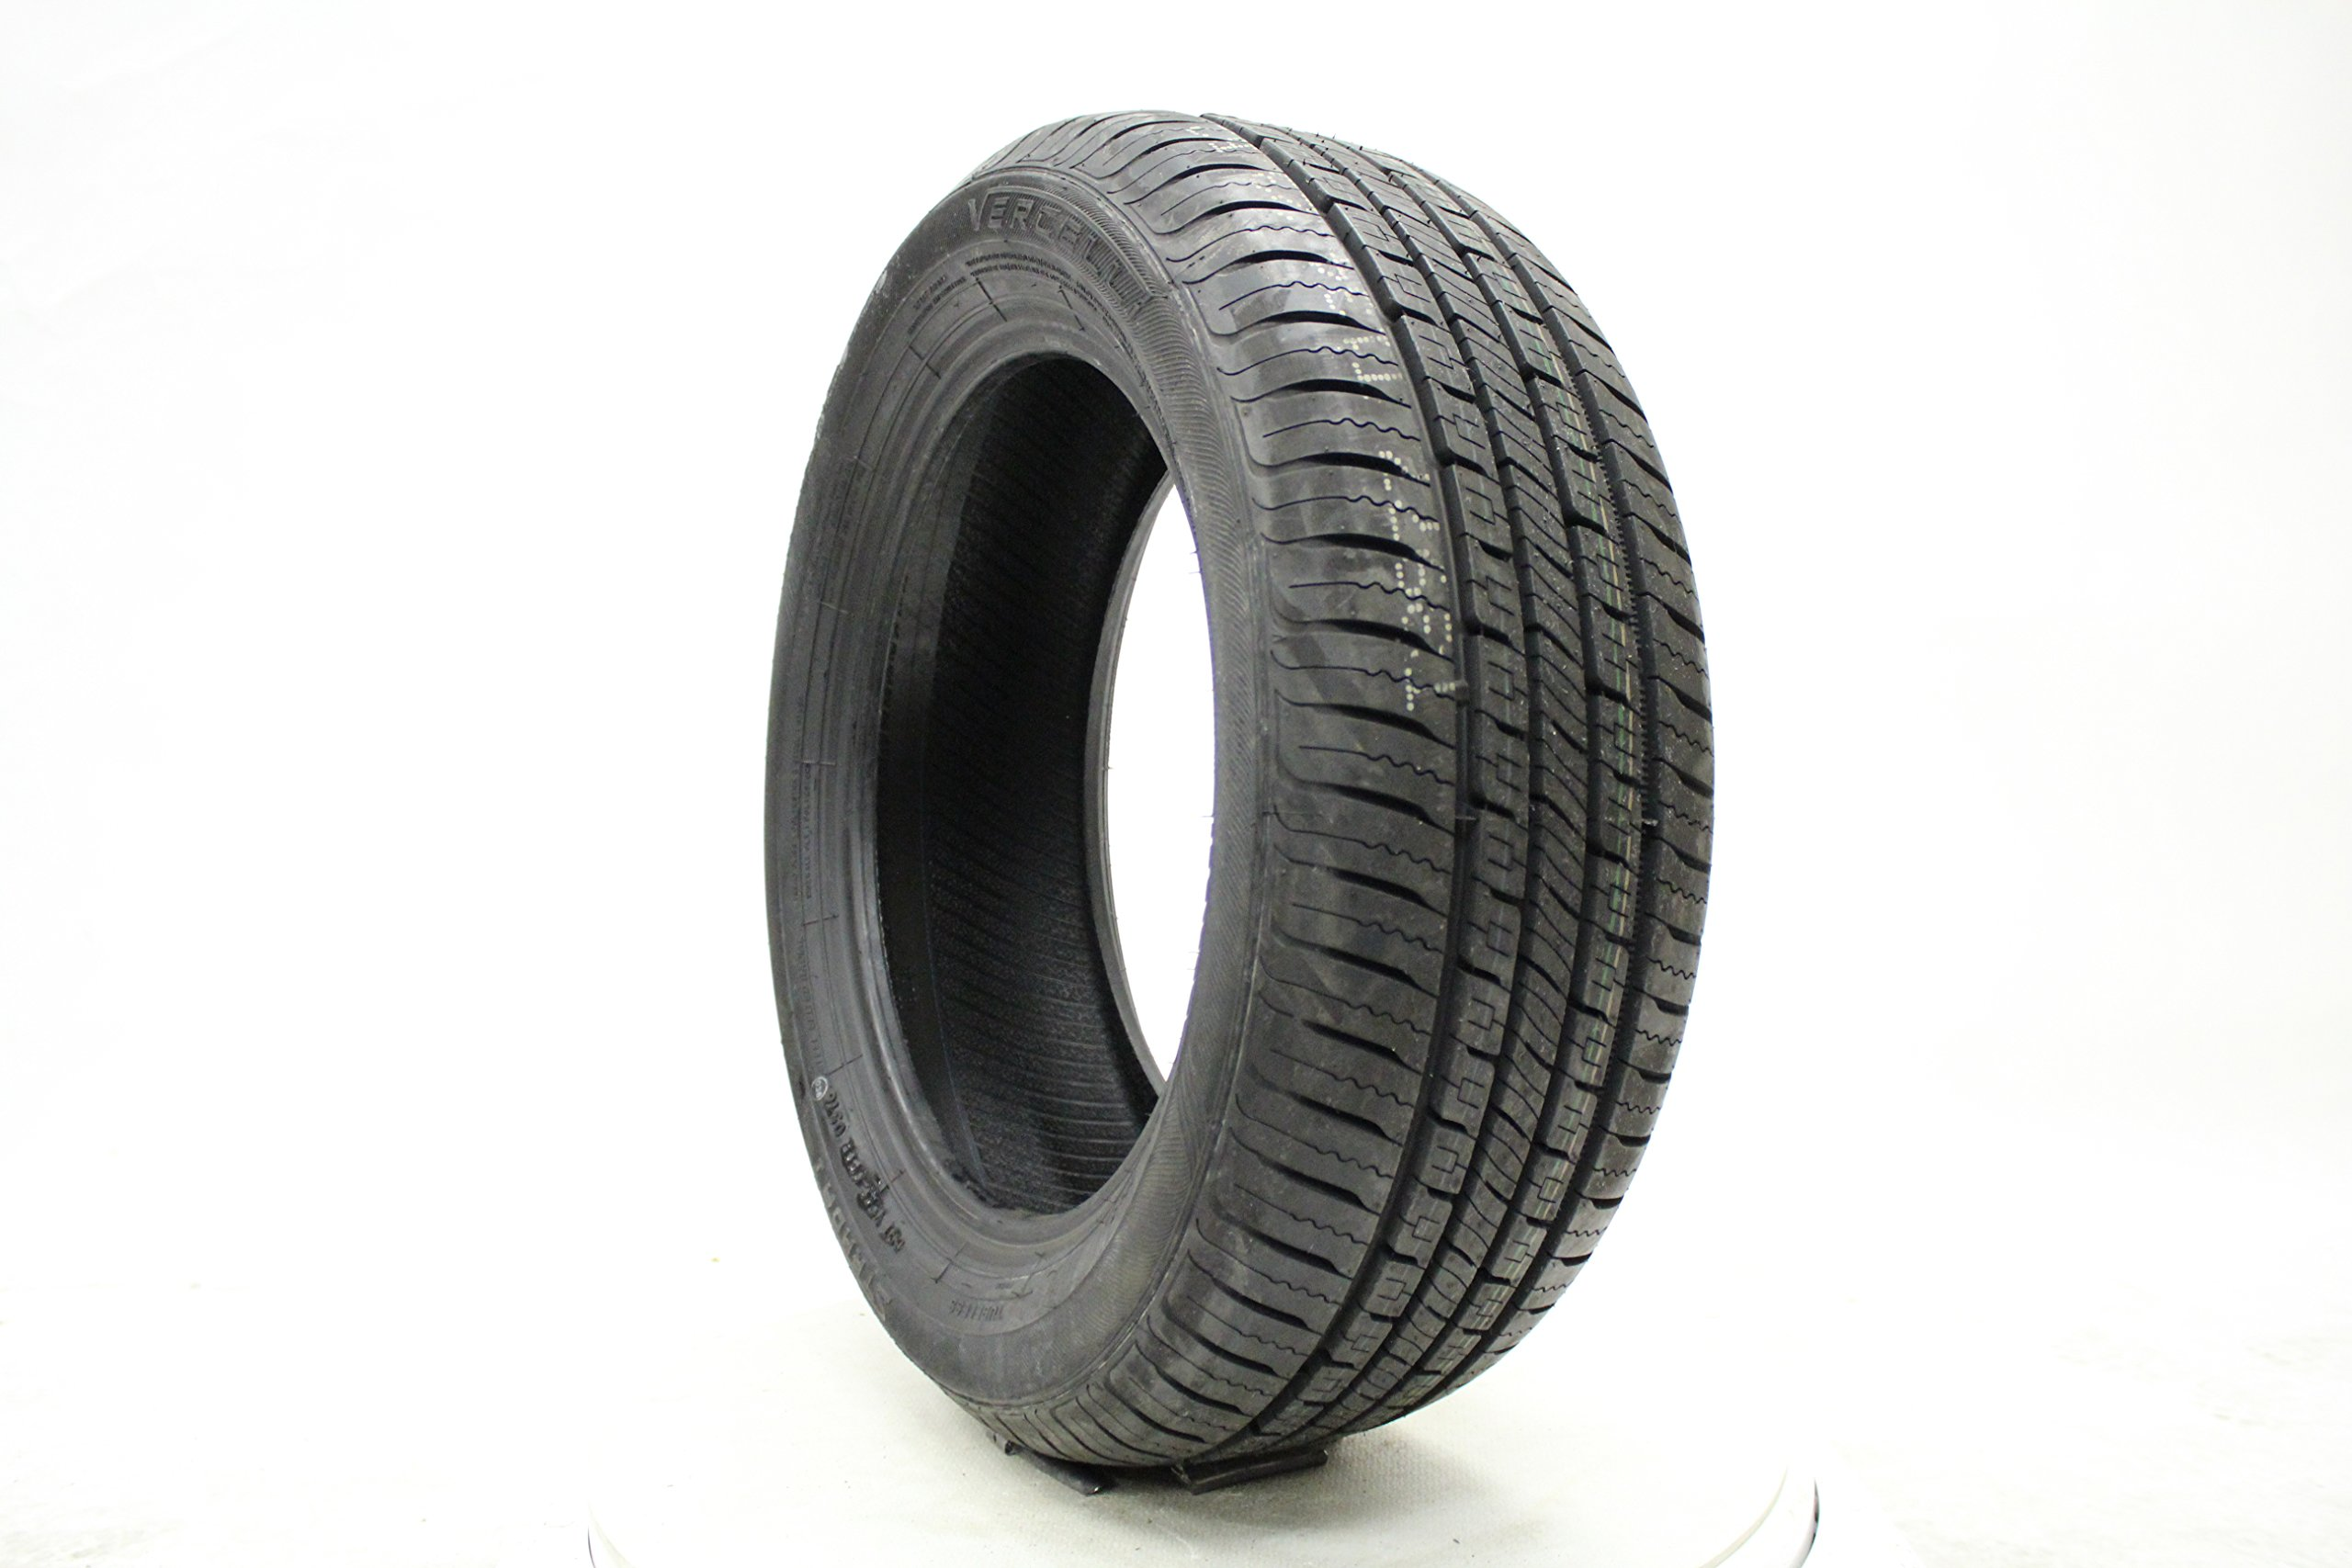 Vercelli VC656 Strada I All-Season Radial Tire - 235/65R18 106T